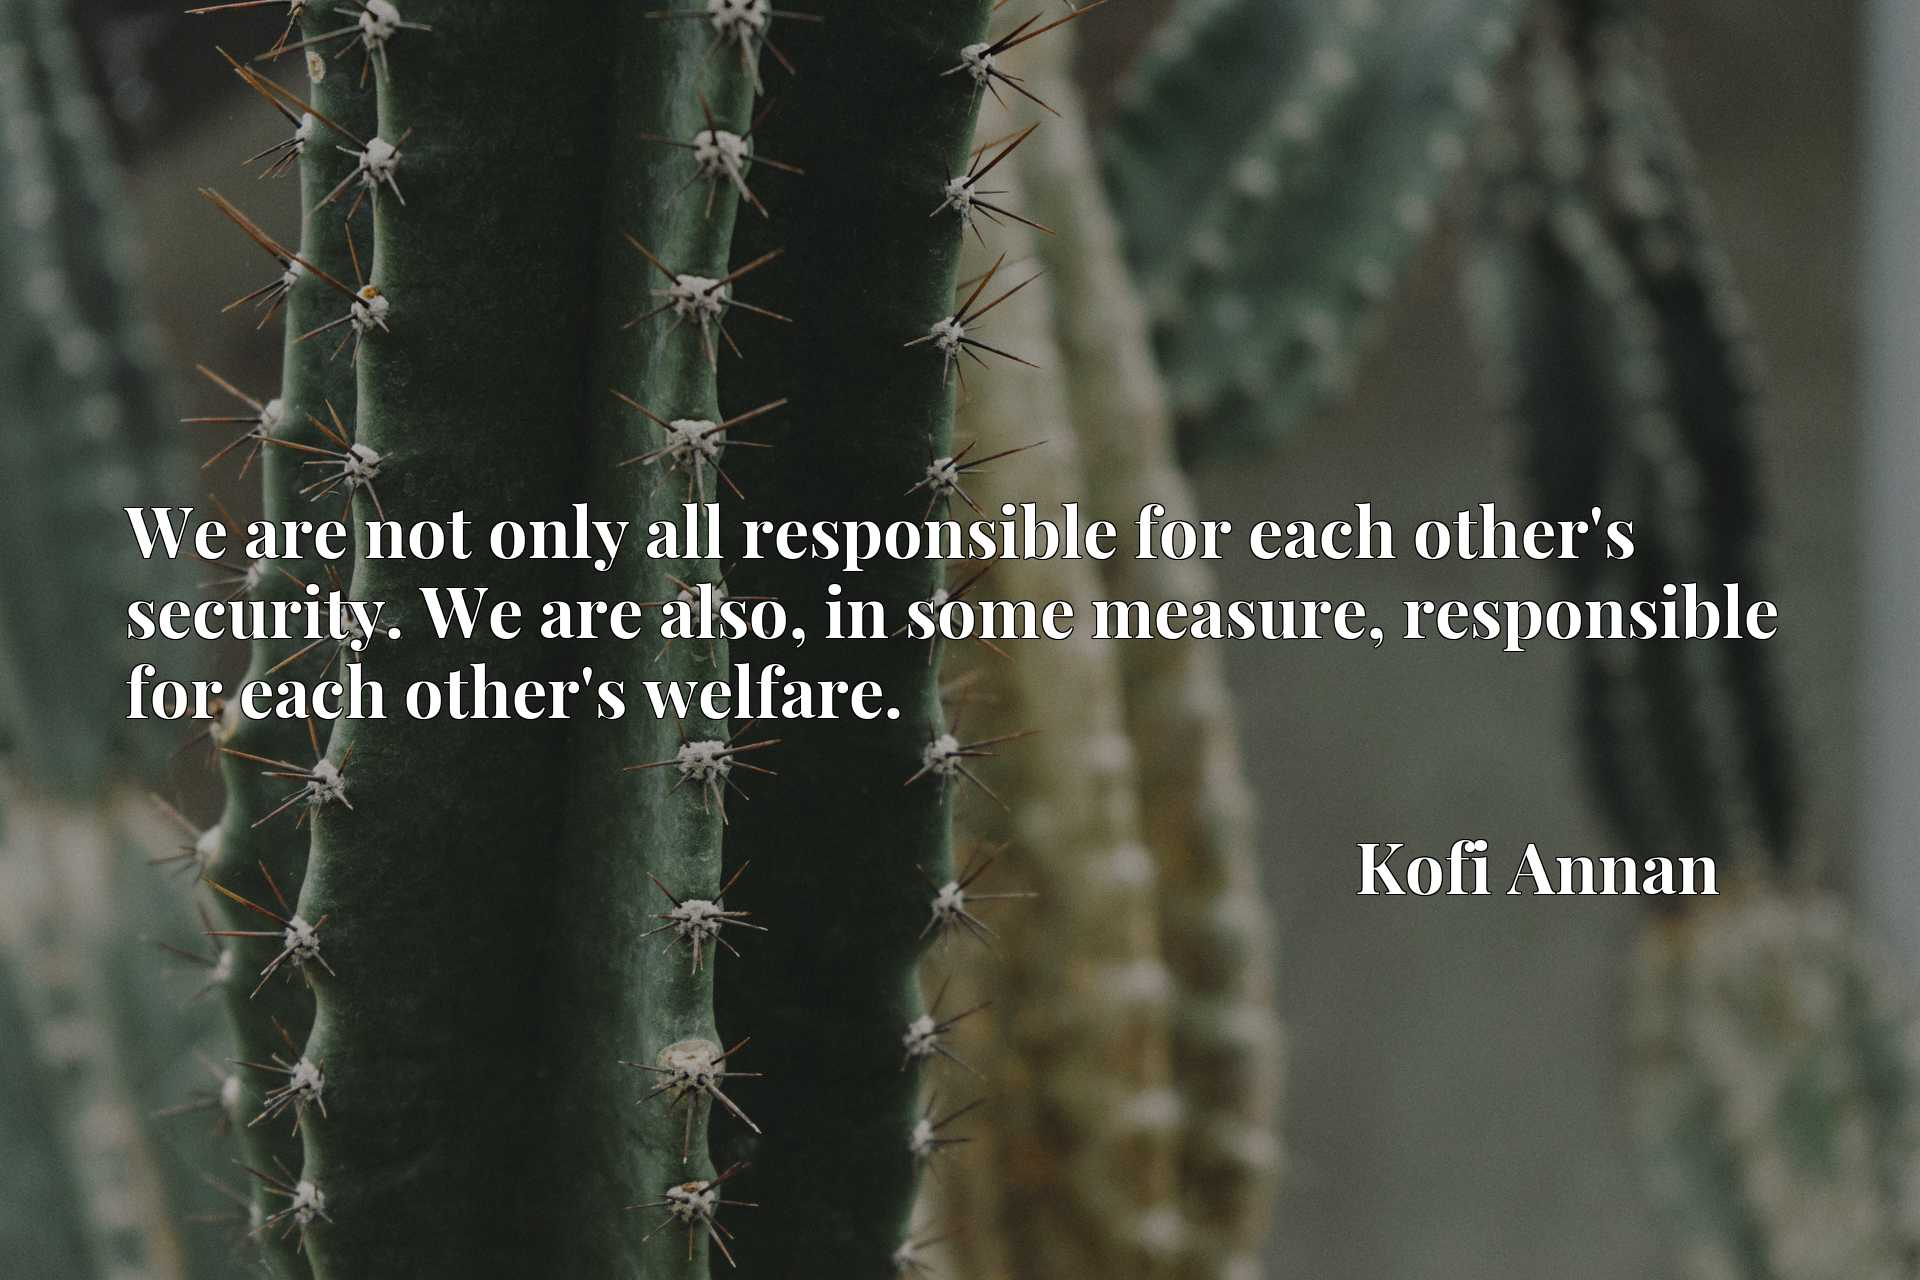 We are not only all responsible for each other's security. We are also, in some measure, responsible for each other's welfare.